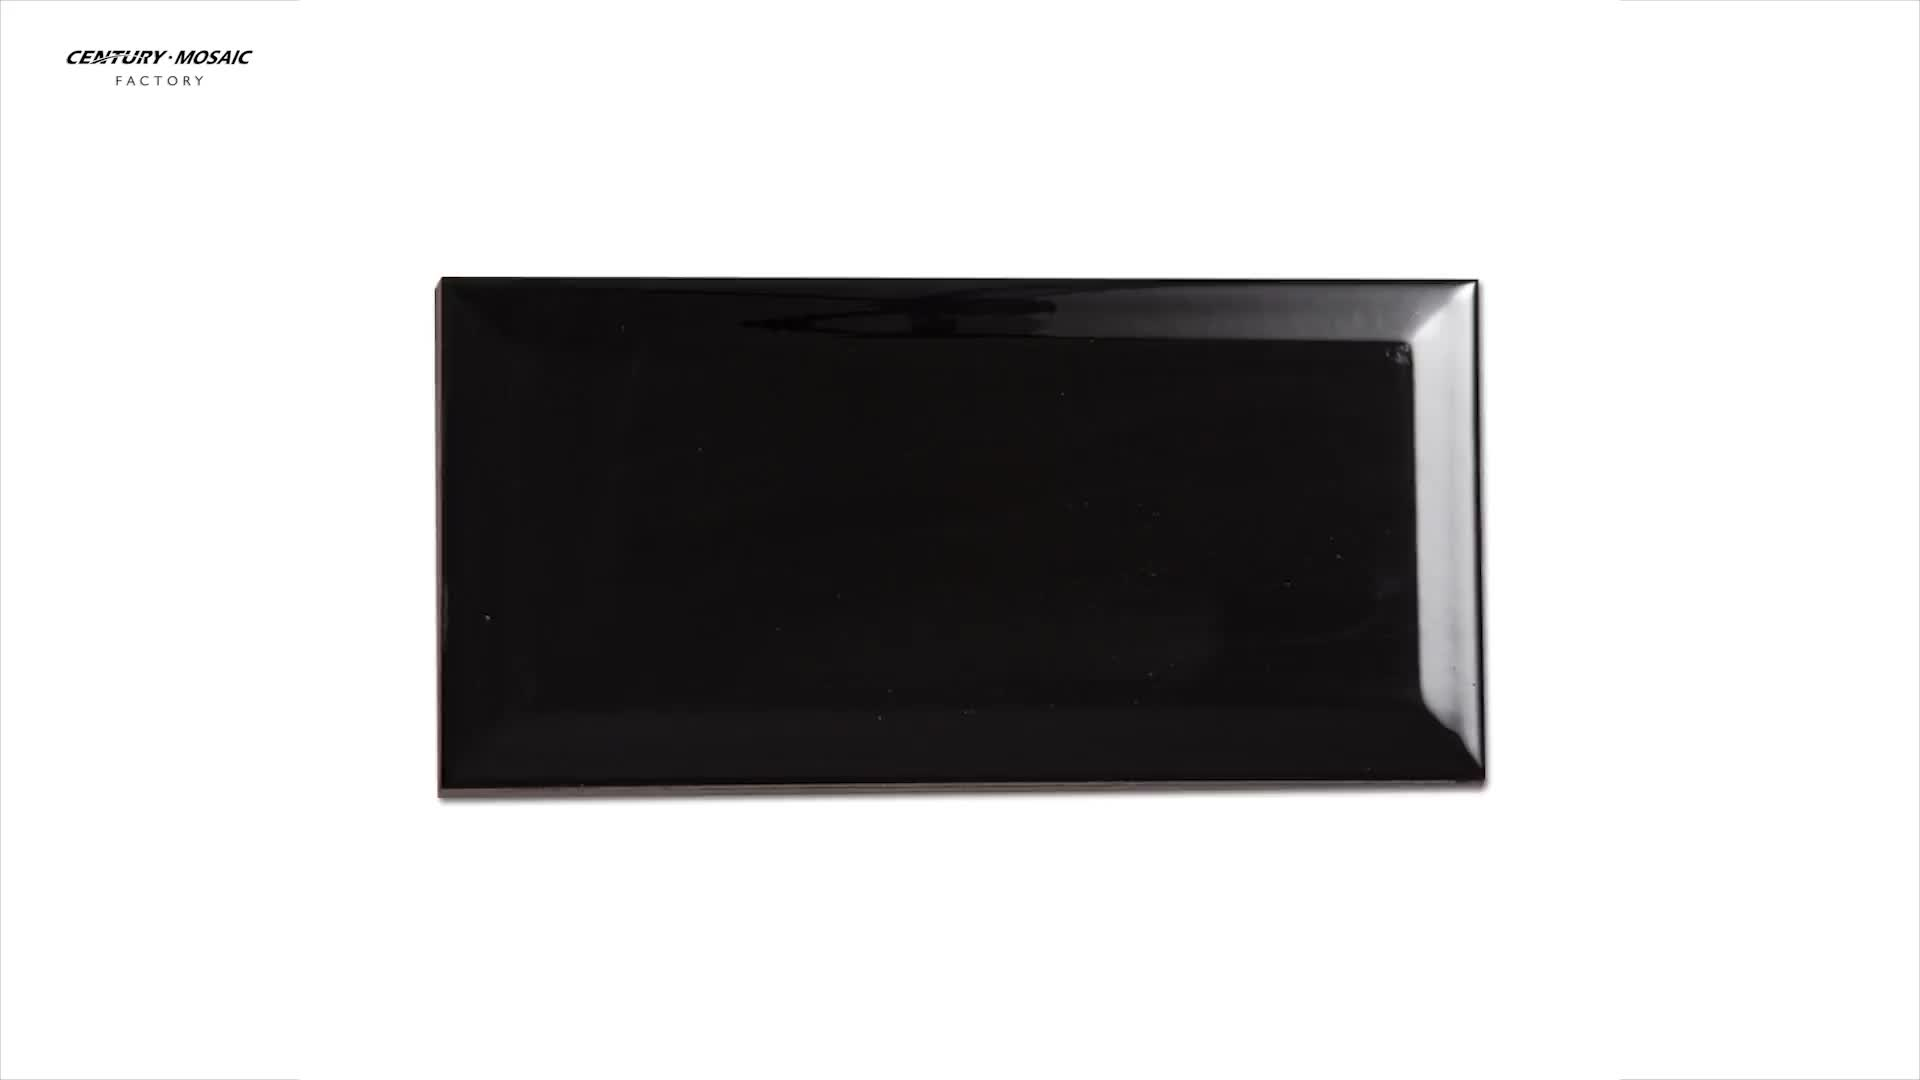 Hot Selling Black Ceramic Tile 4x8 Kitchen Tile With Beveled Edge For Home Decoration